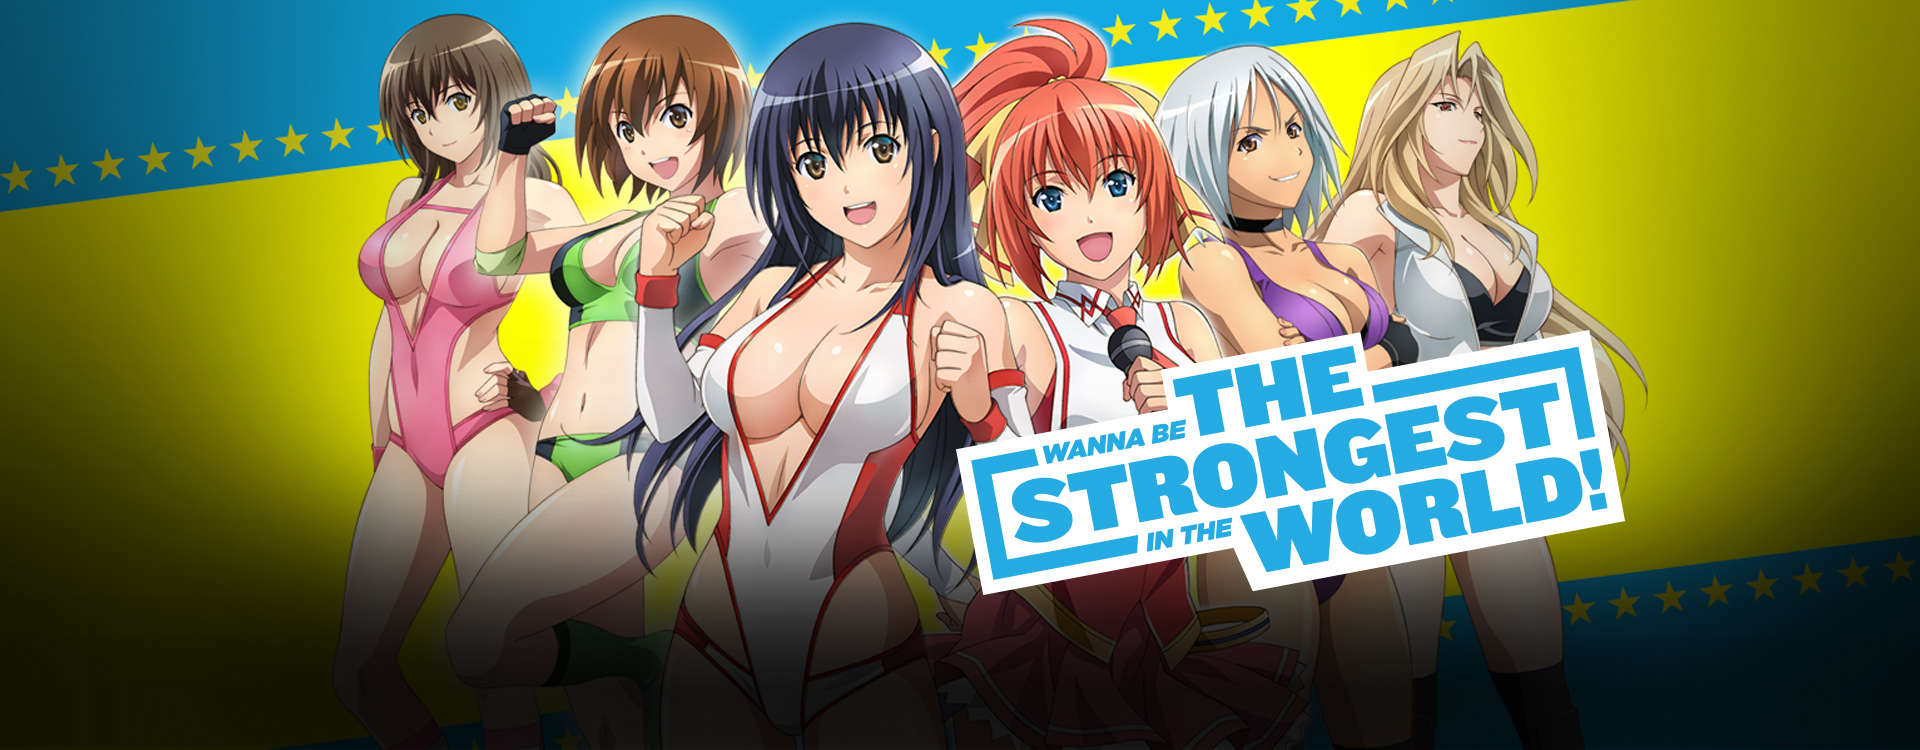 Wanna be the Strongest in the World!